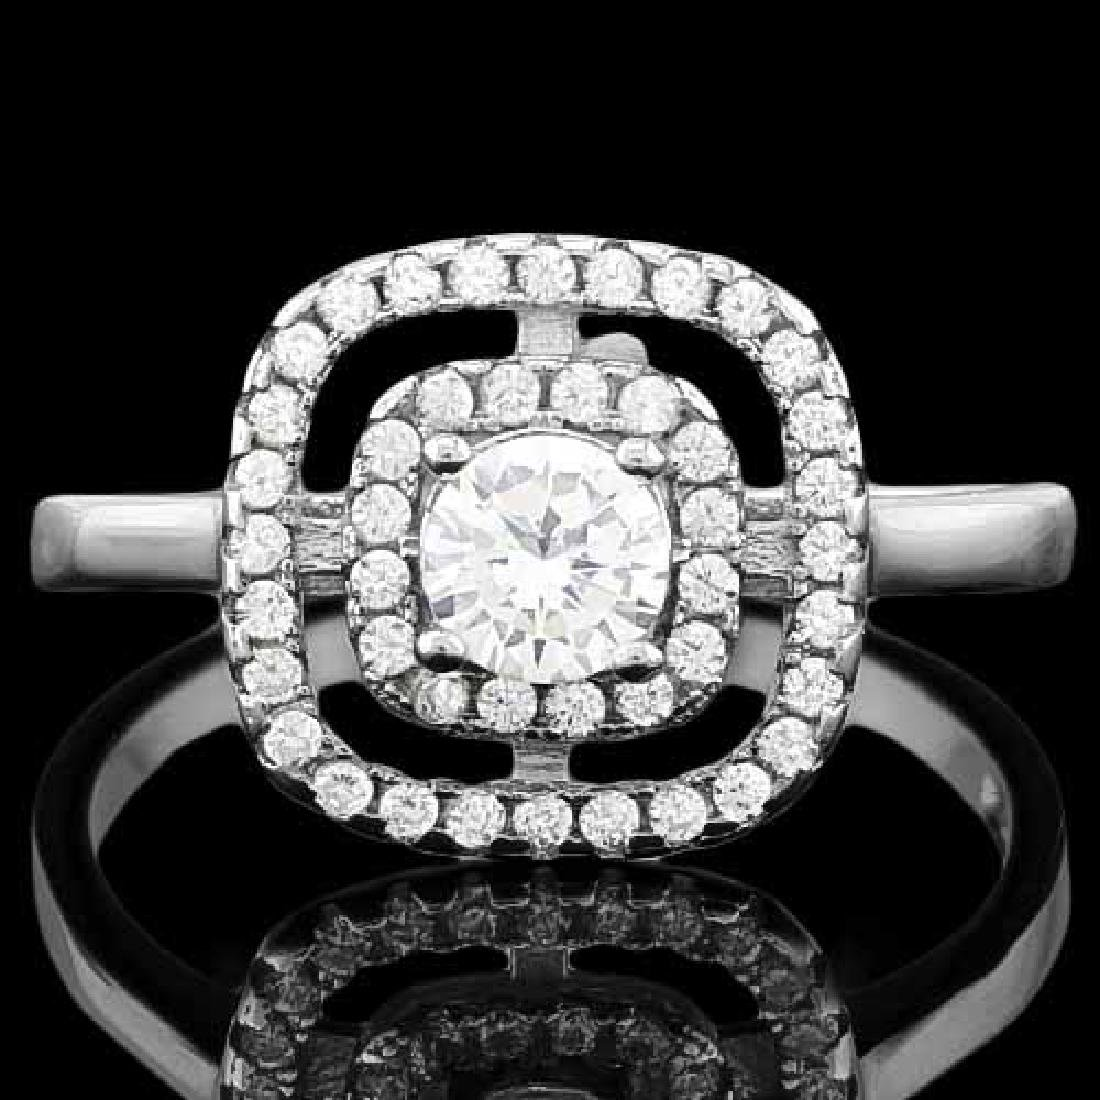 1 CARAT (45 PCS) FLAWLESS CREATED DIAMOND 925 STERLING